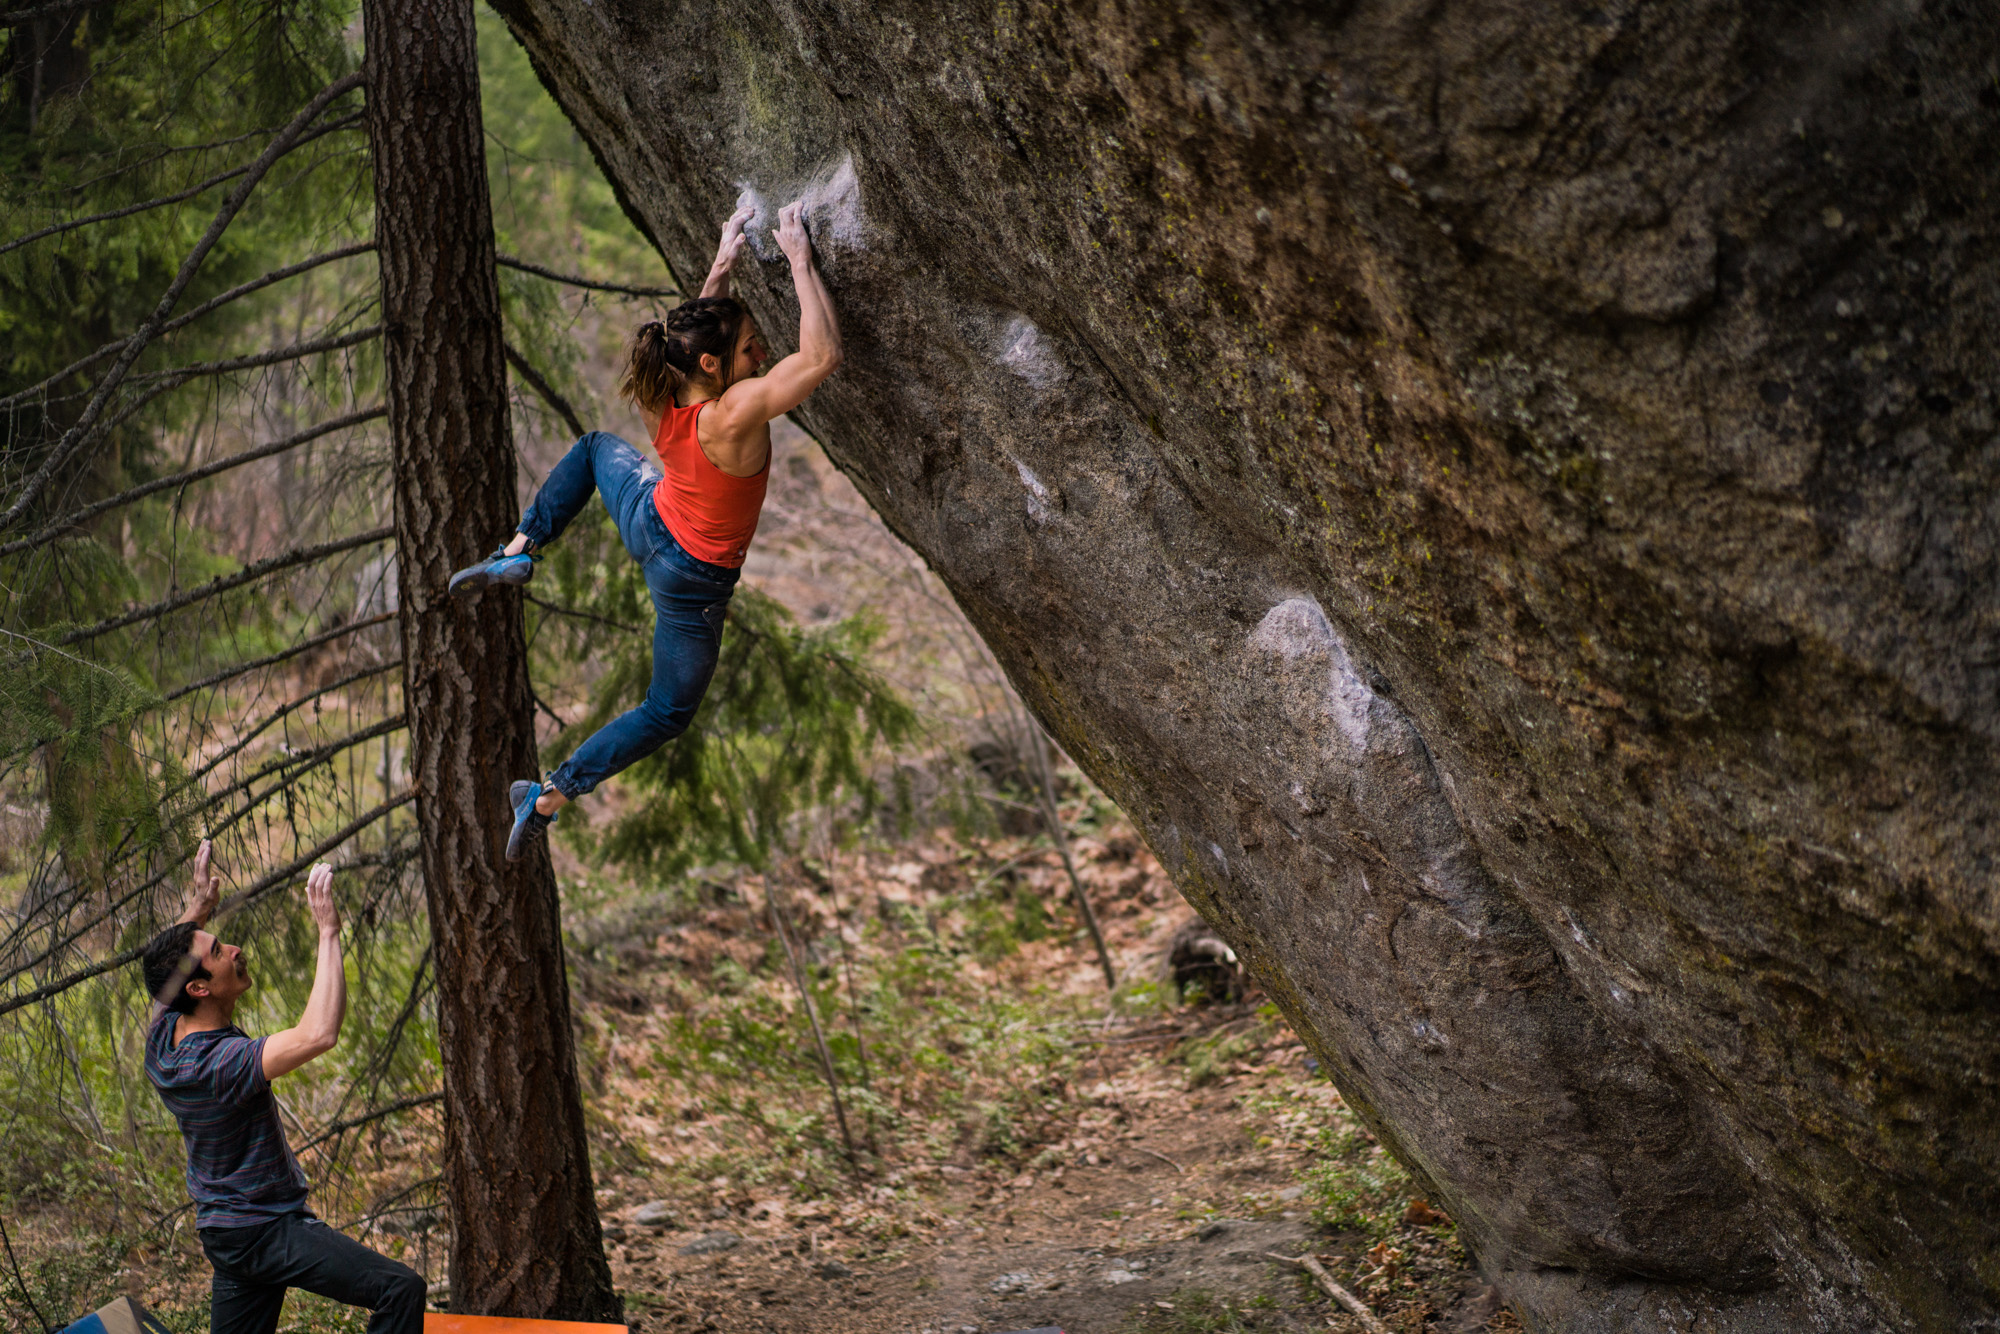 Alex Puccio owning the cut-loose move on The Penrose Step (way to go on this thing, by the way Alex!)